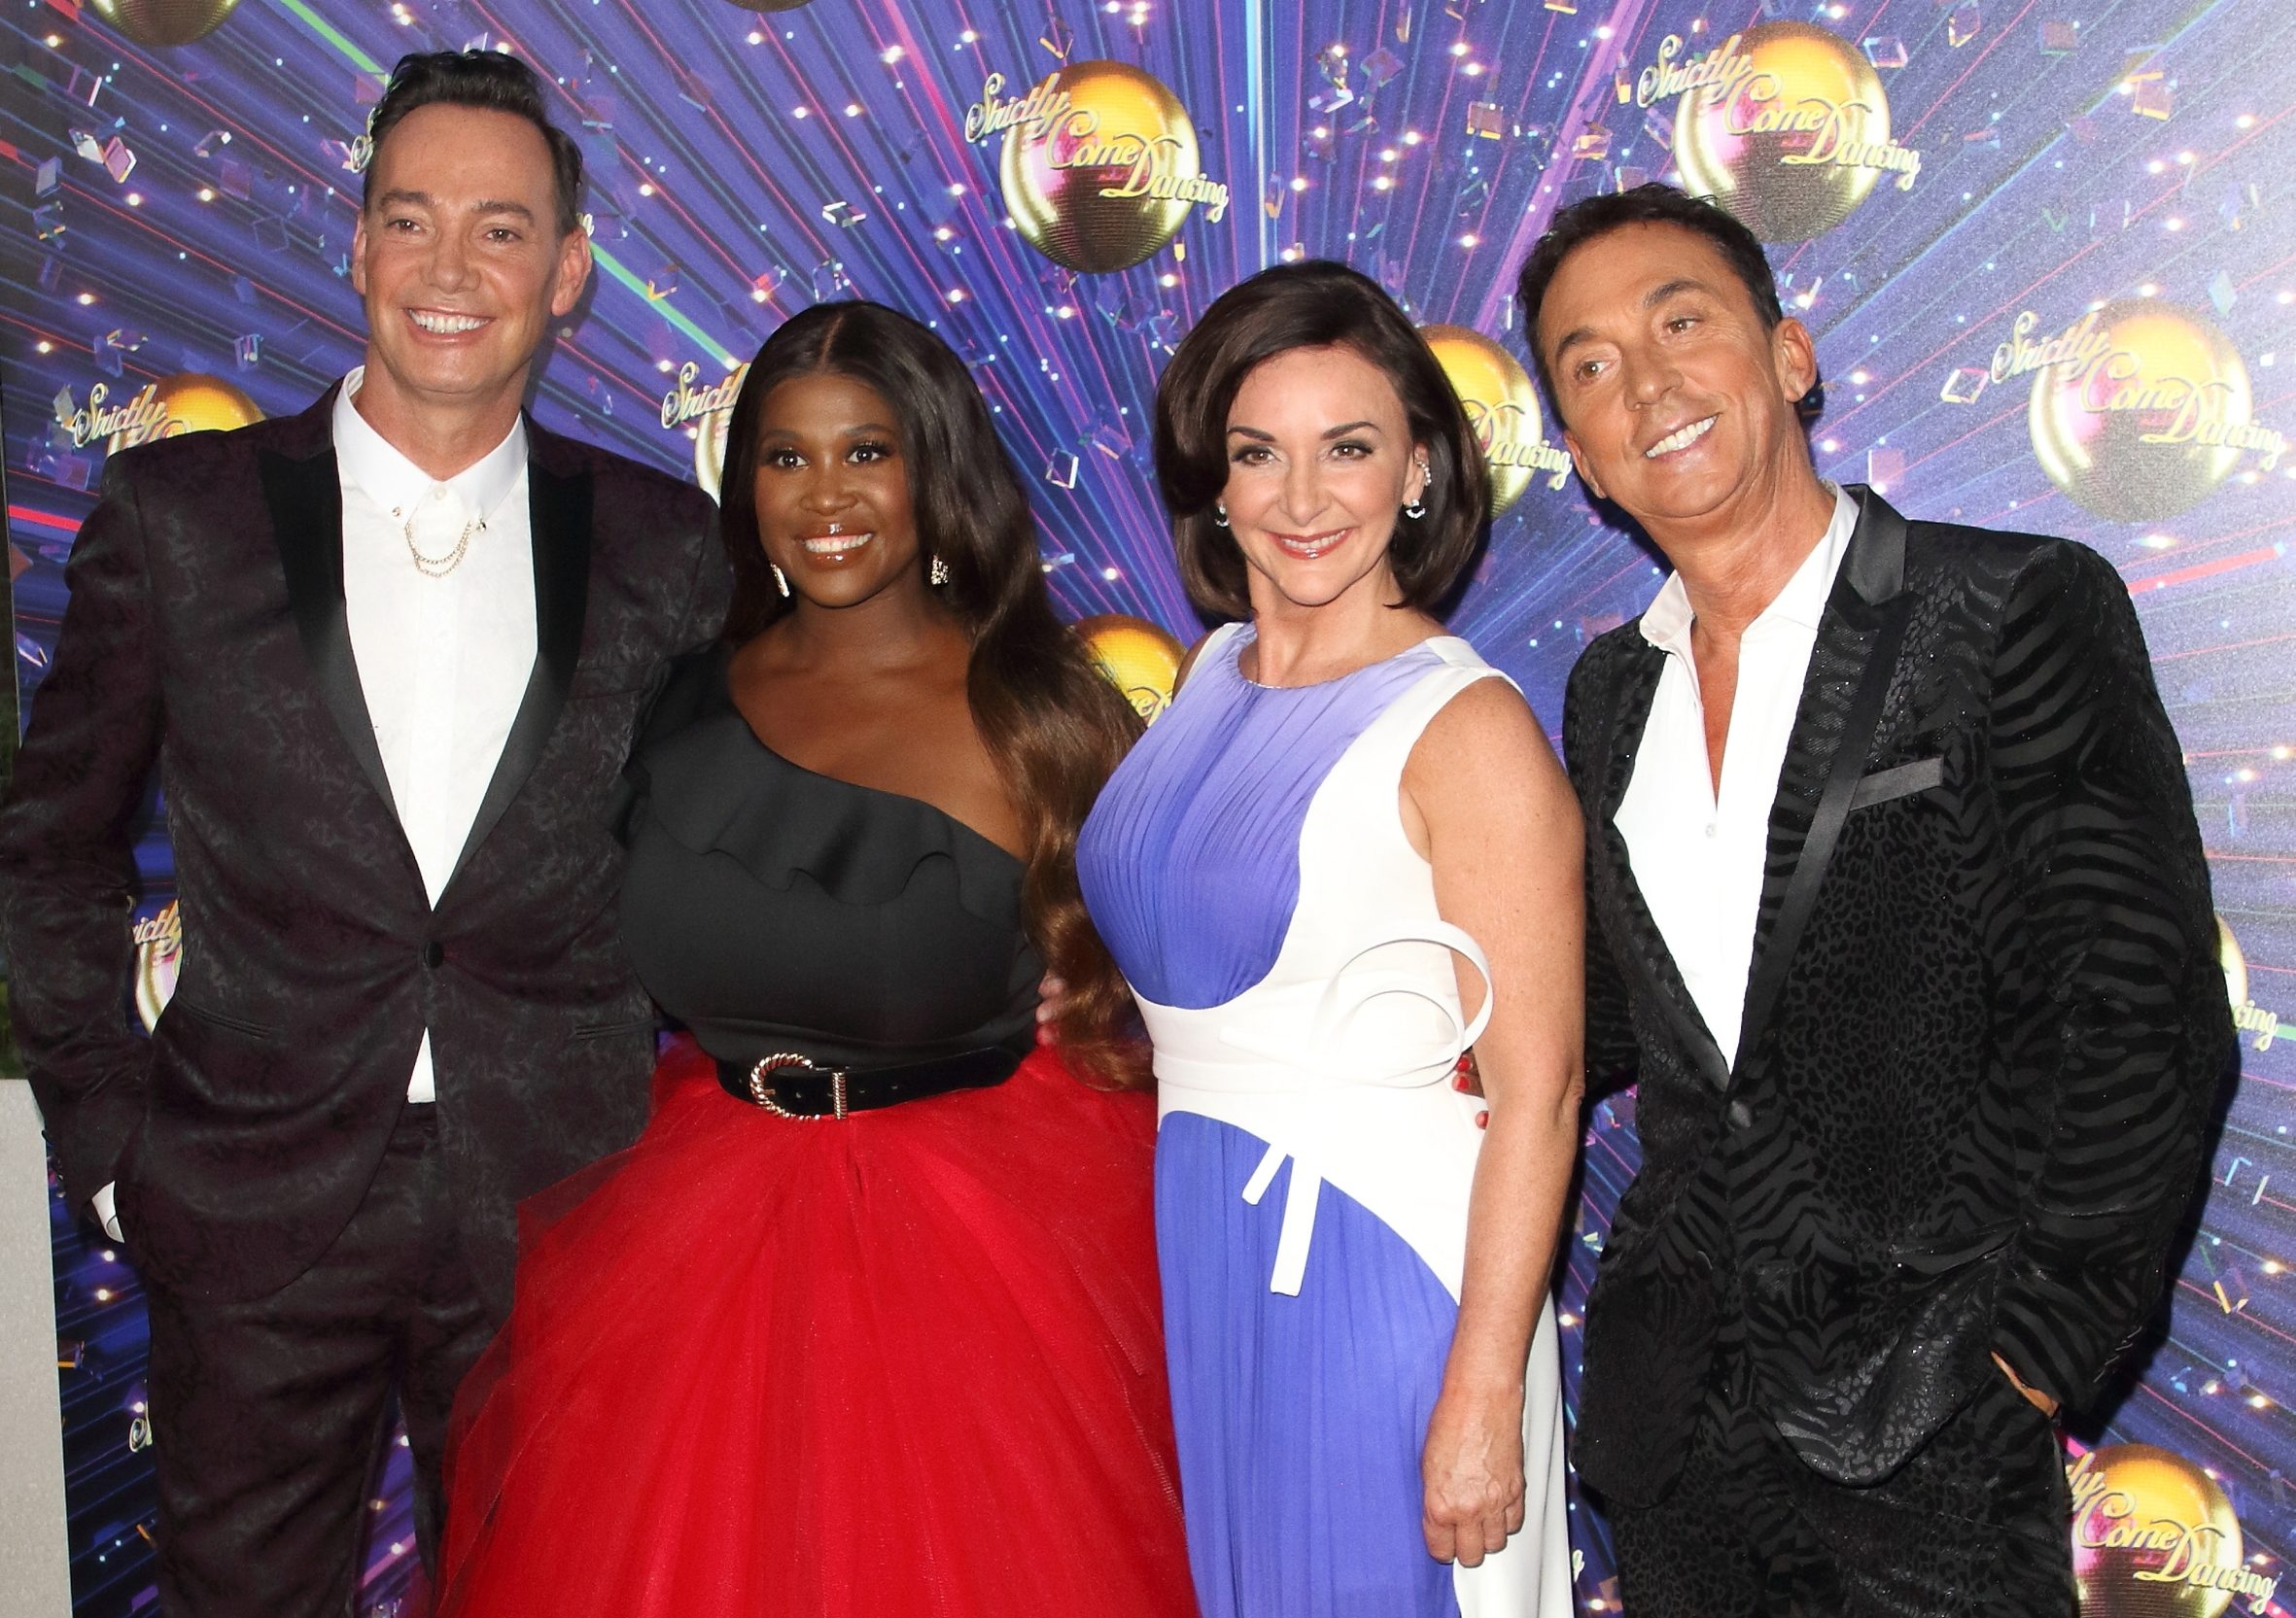 Strictly Come Dancing Christmas Special details have been officially confirmed